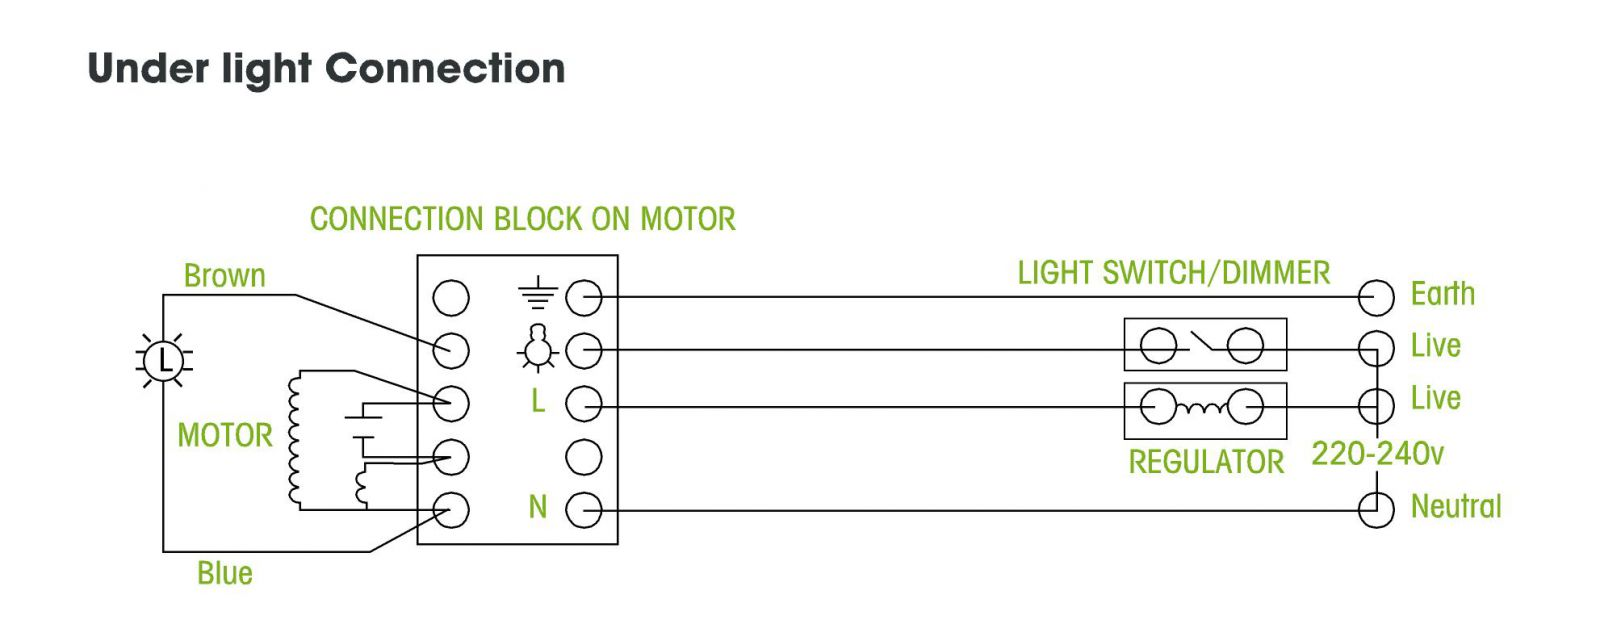 Solent Blue Line Light Switch Wiring Diagram Instructions